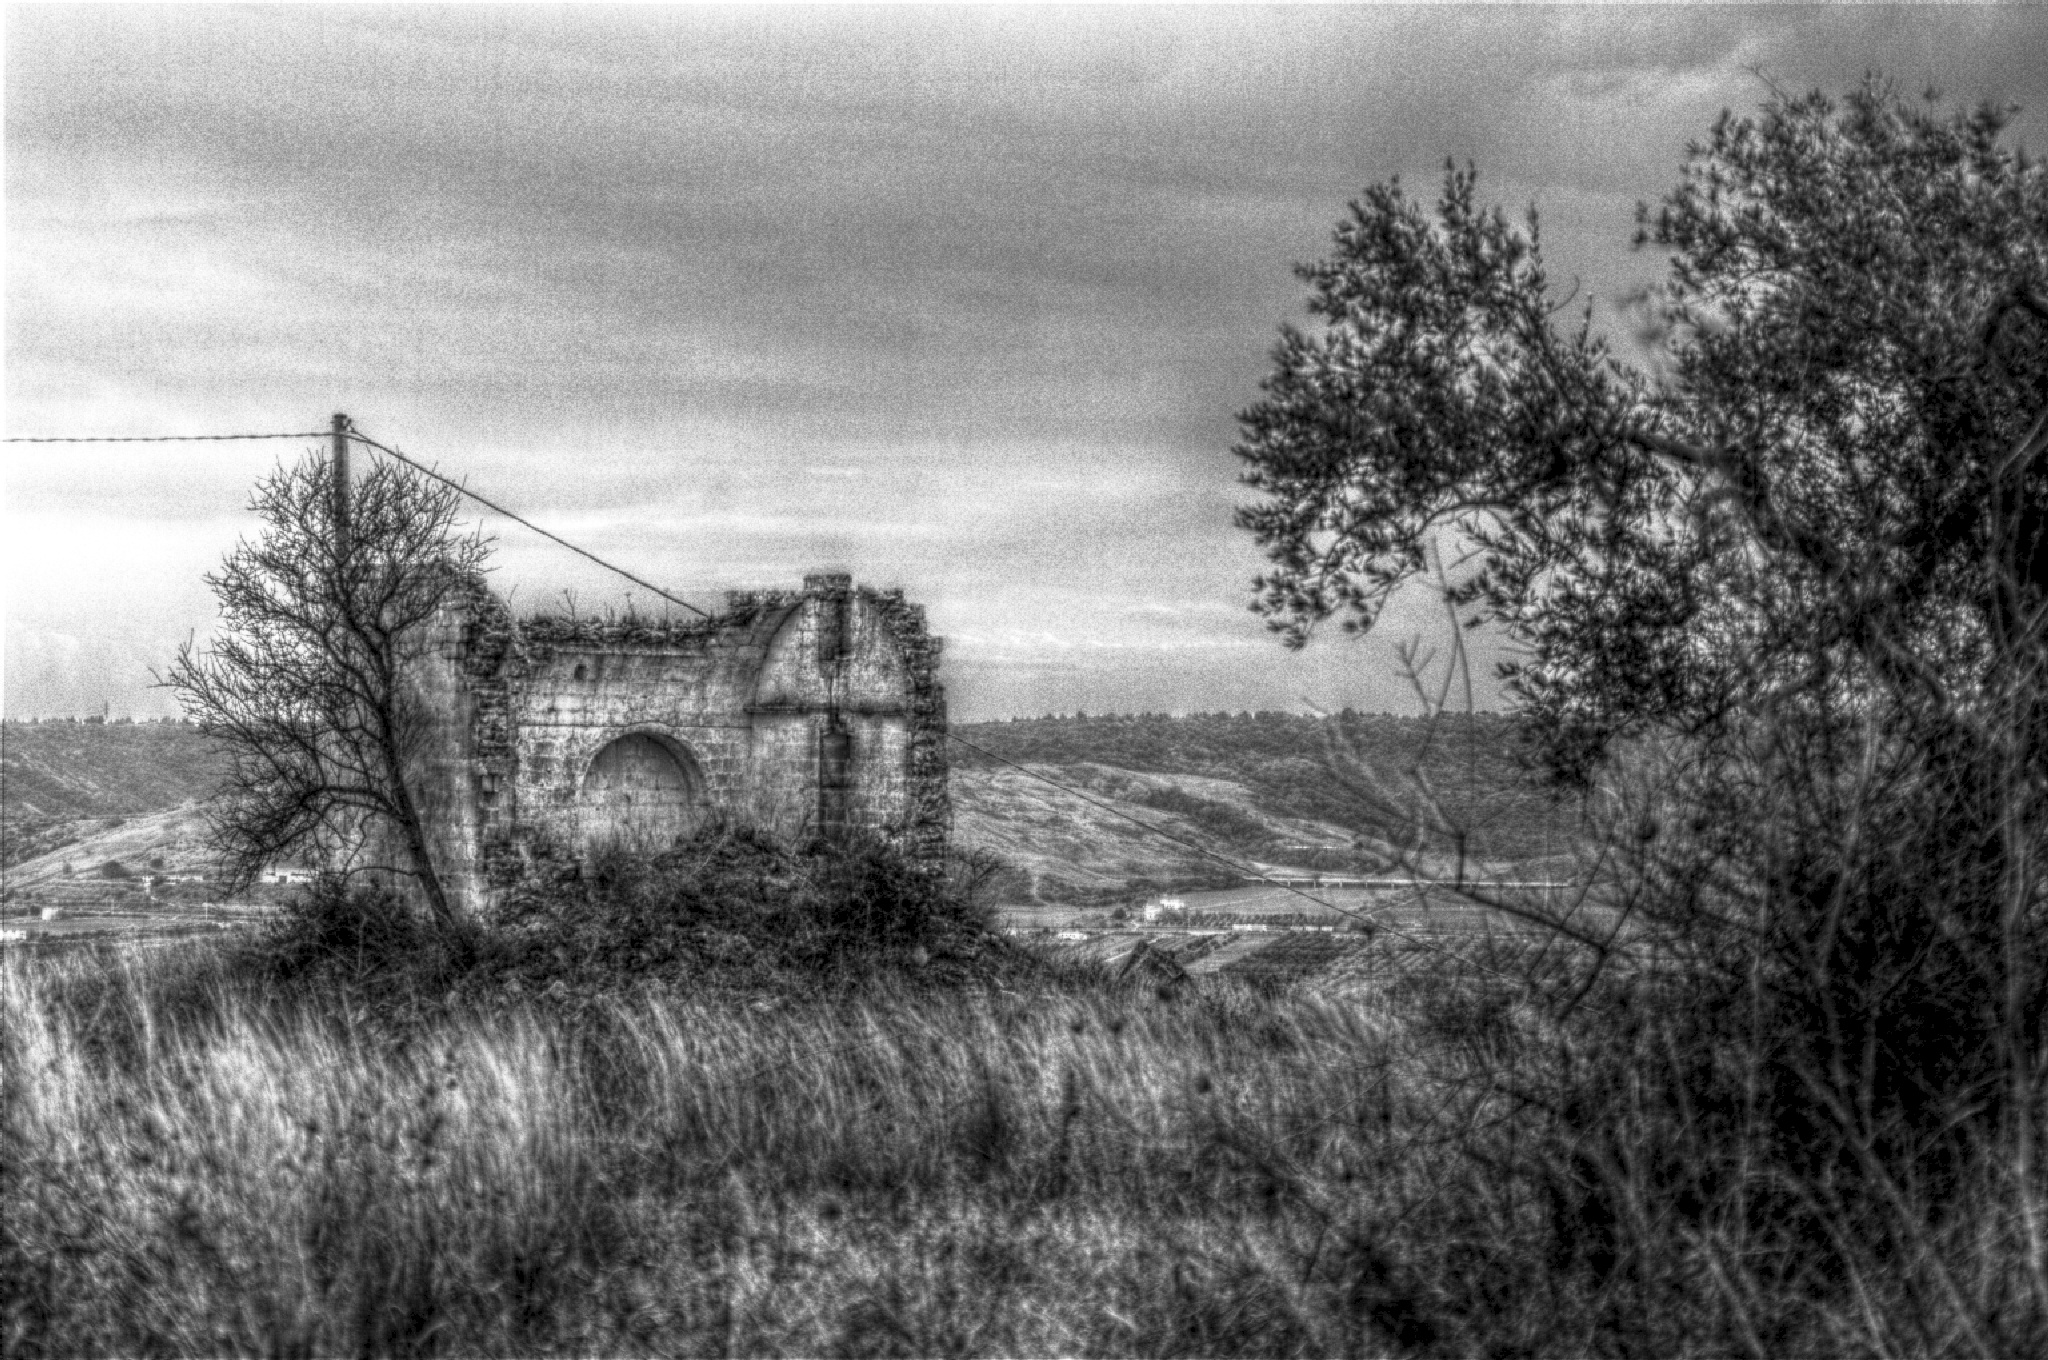 B&W Hdr by Angelo Petrozza